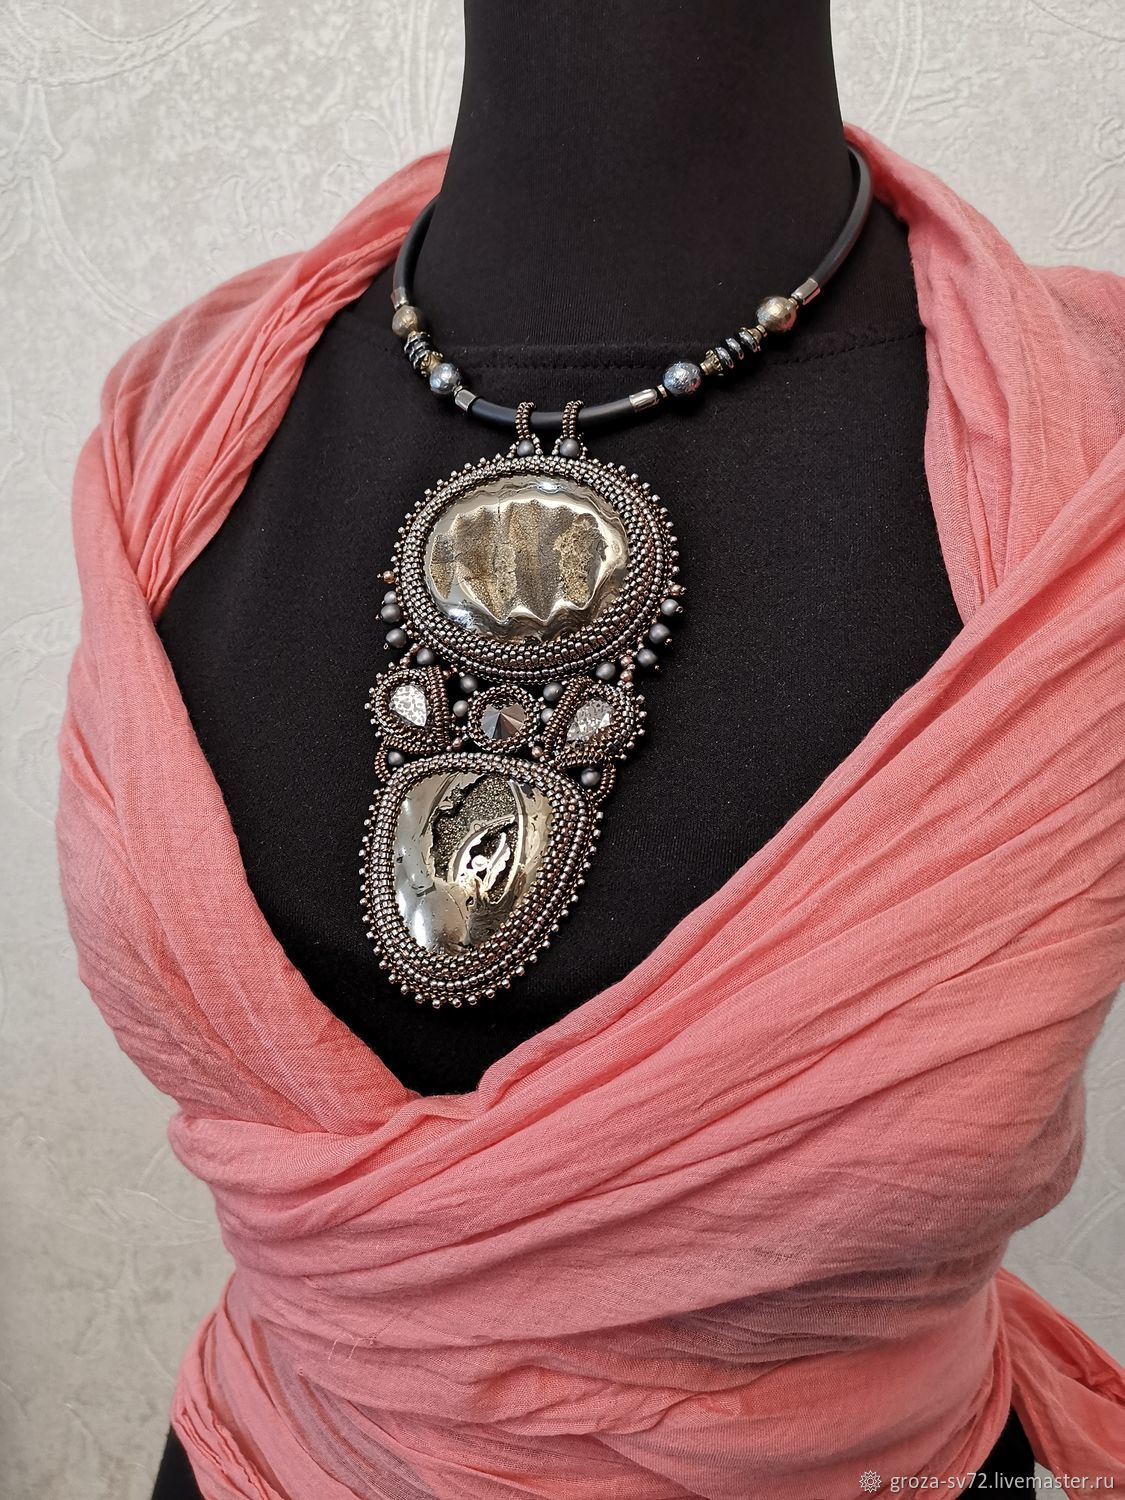 Pendant necklace ' Antiquity', Necklace, Moscow,  Фото №1